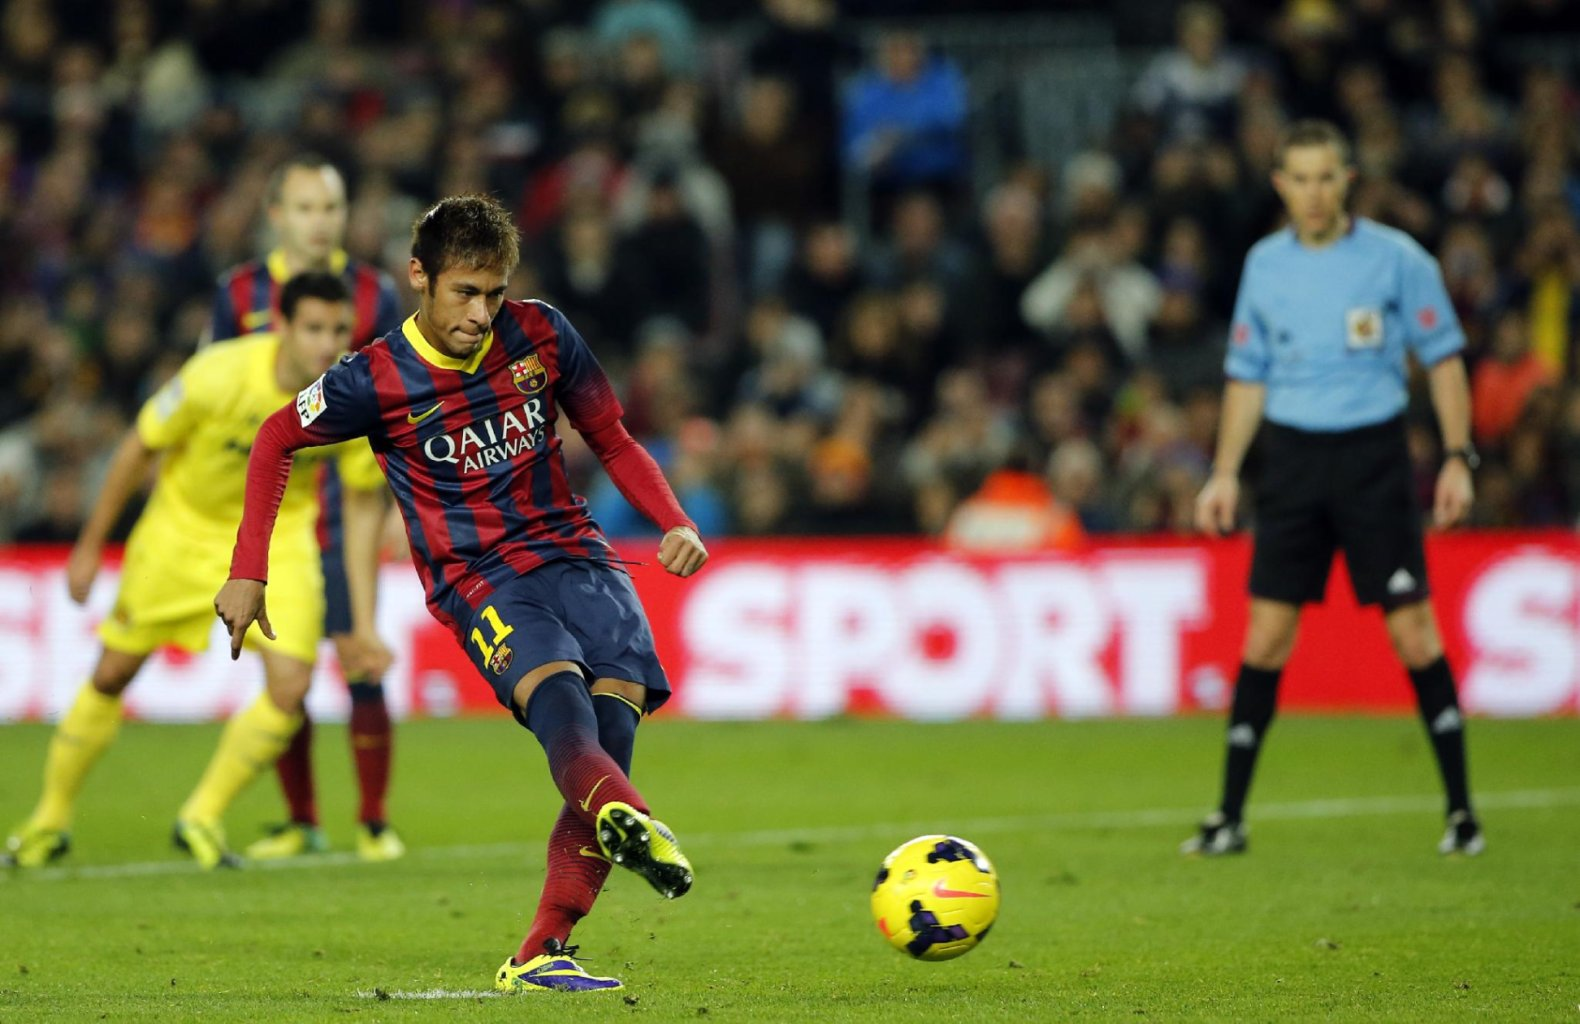 Neymar scoring from the penalty-kiick spot